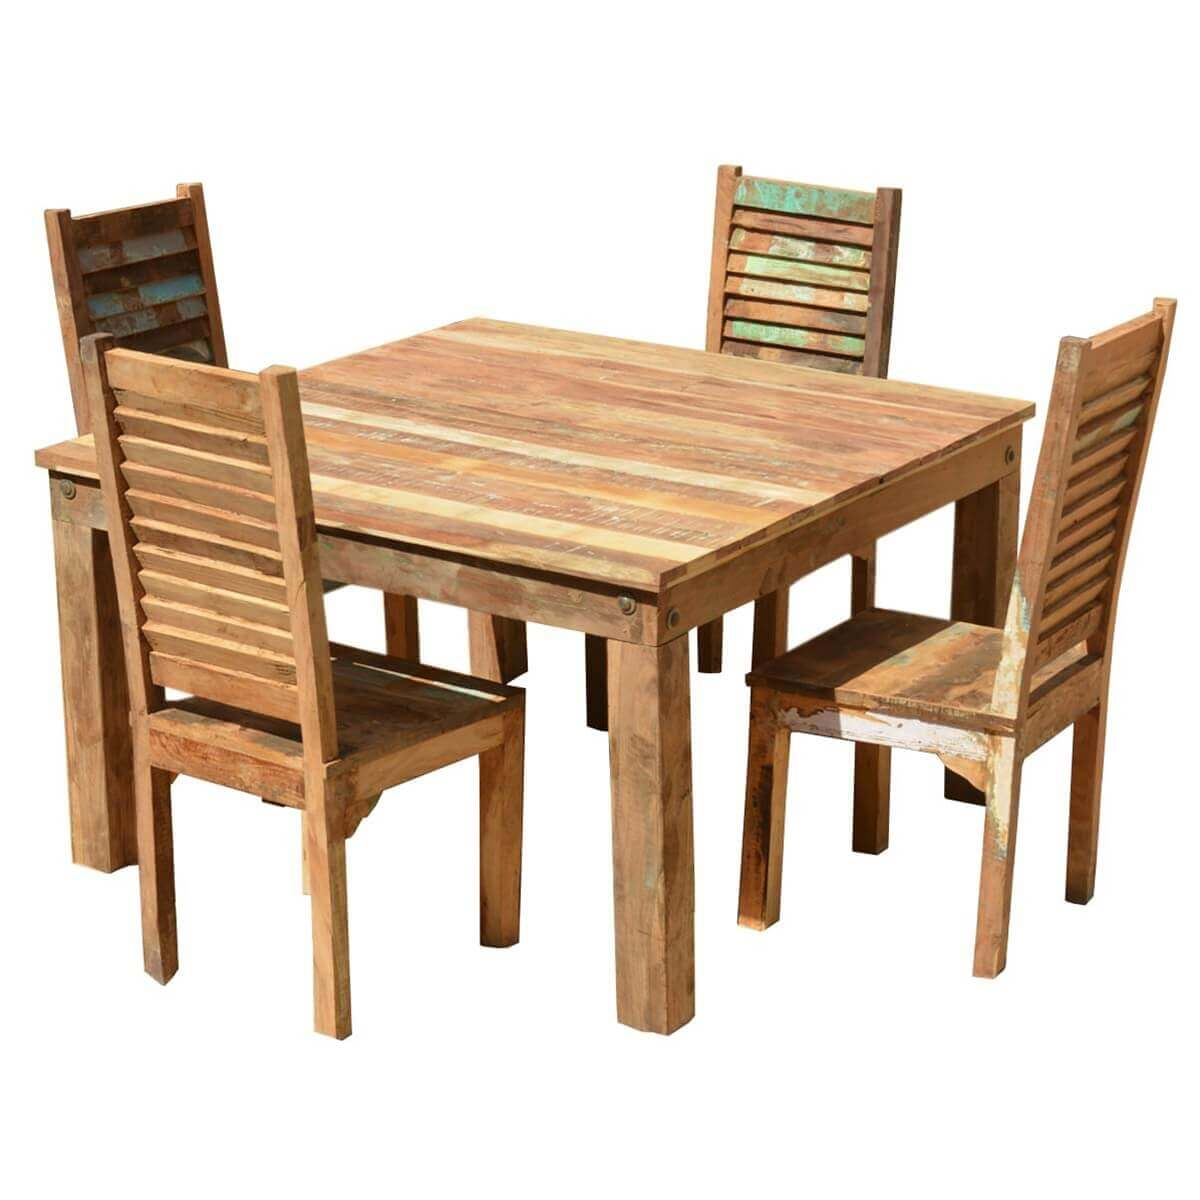 barnwood dining room chairs and board swivel chair ohio reclaimed wood furniture table shutter back